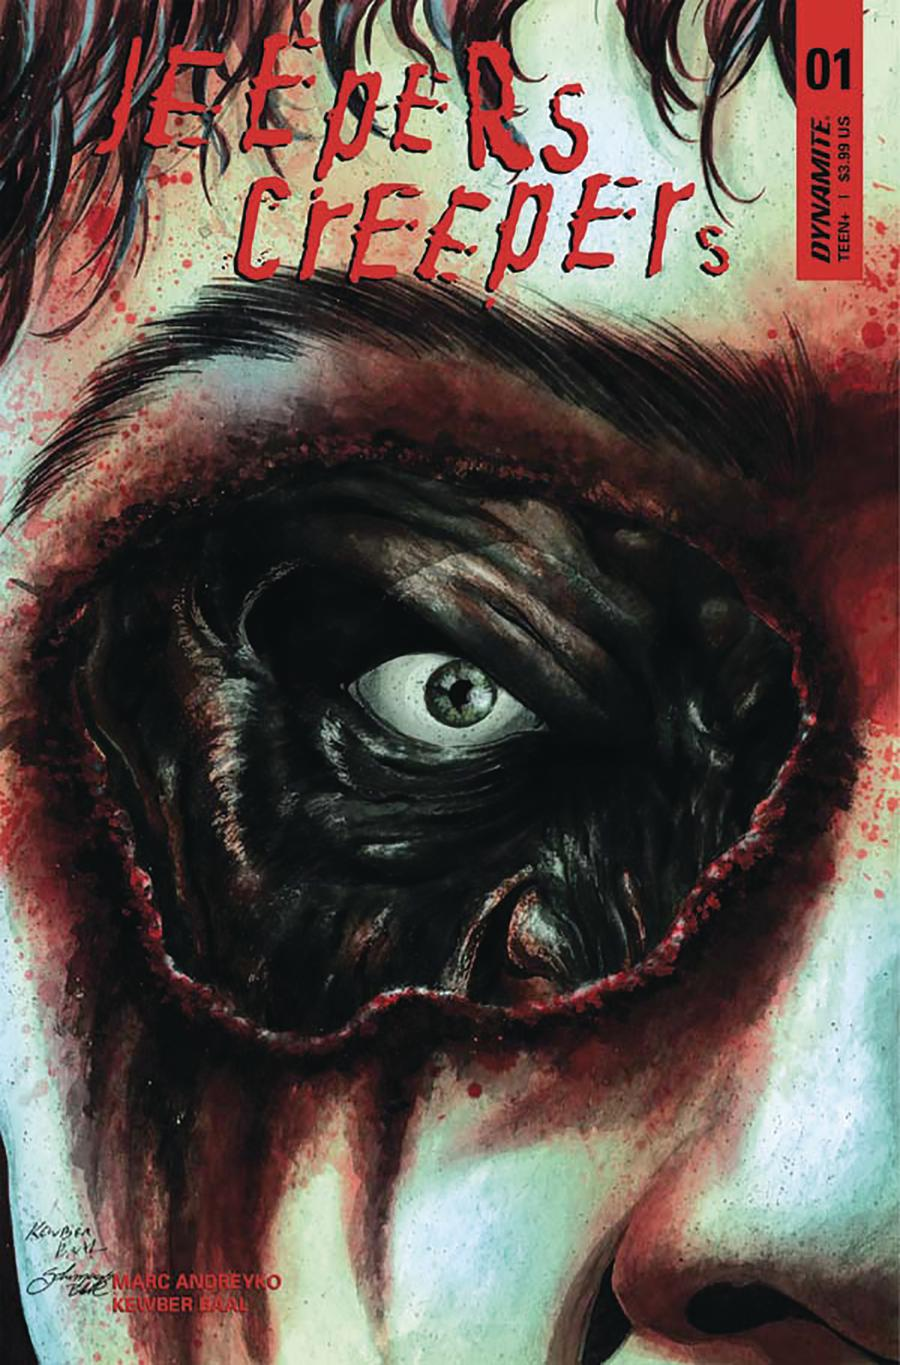 Jeepers Creepers #1 Cover B Variant Kewber Baal Cover